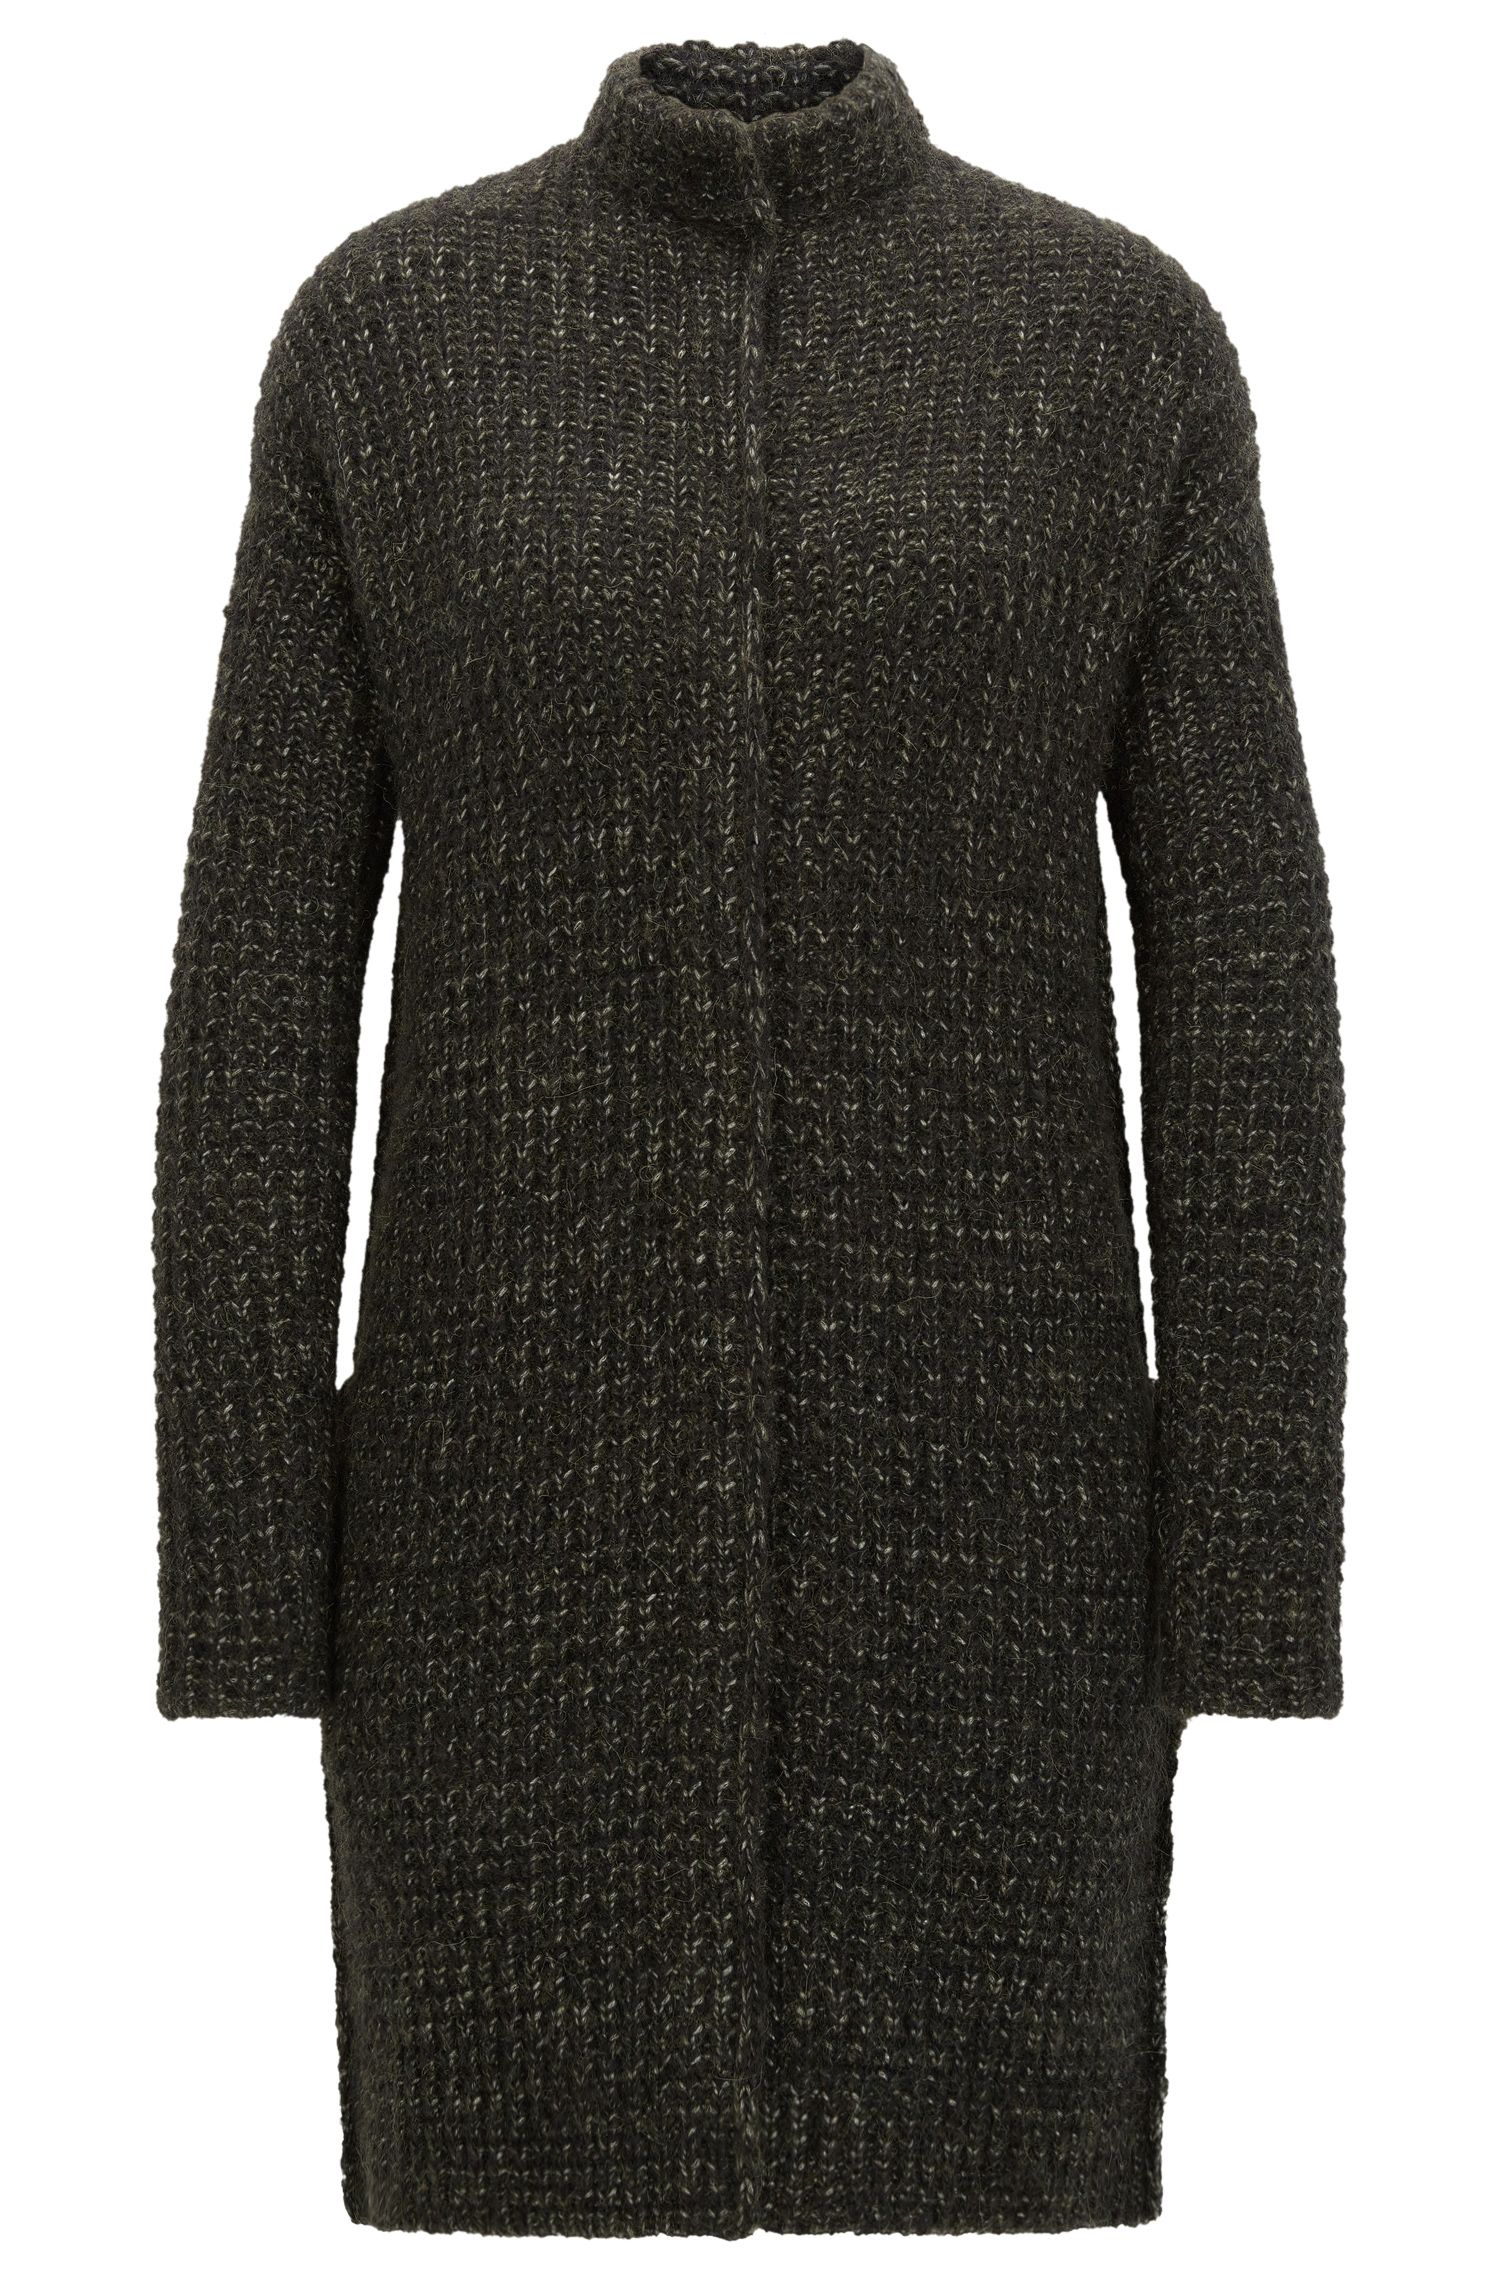 Relaxed-fit coat in structured yarns